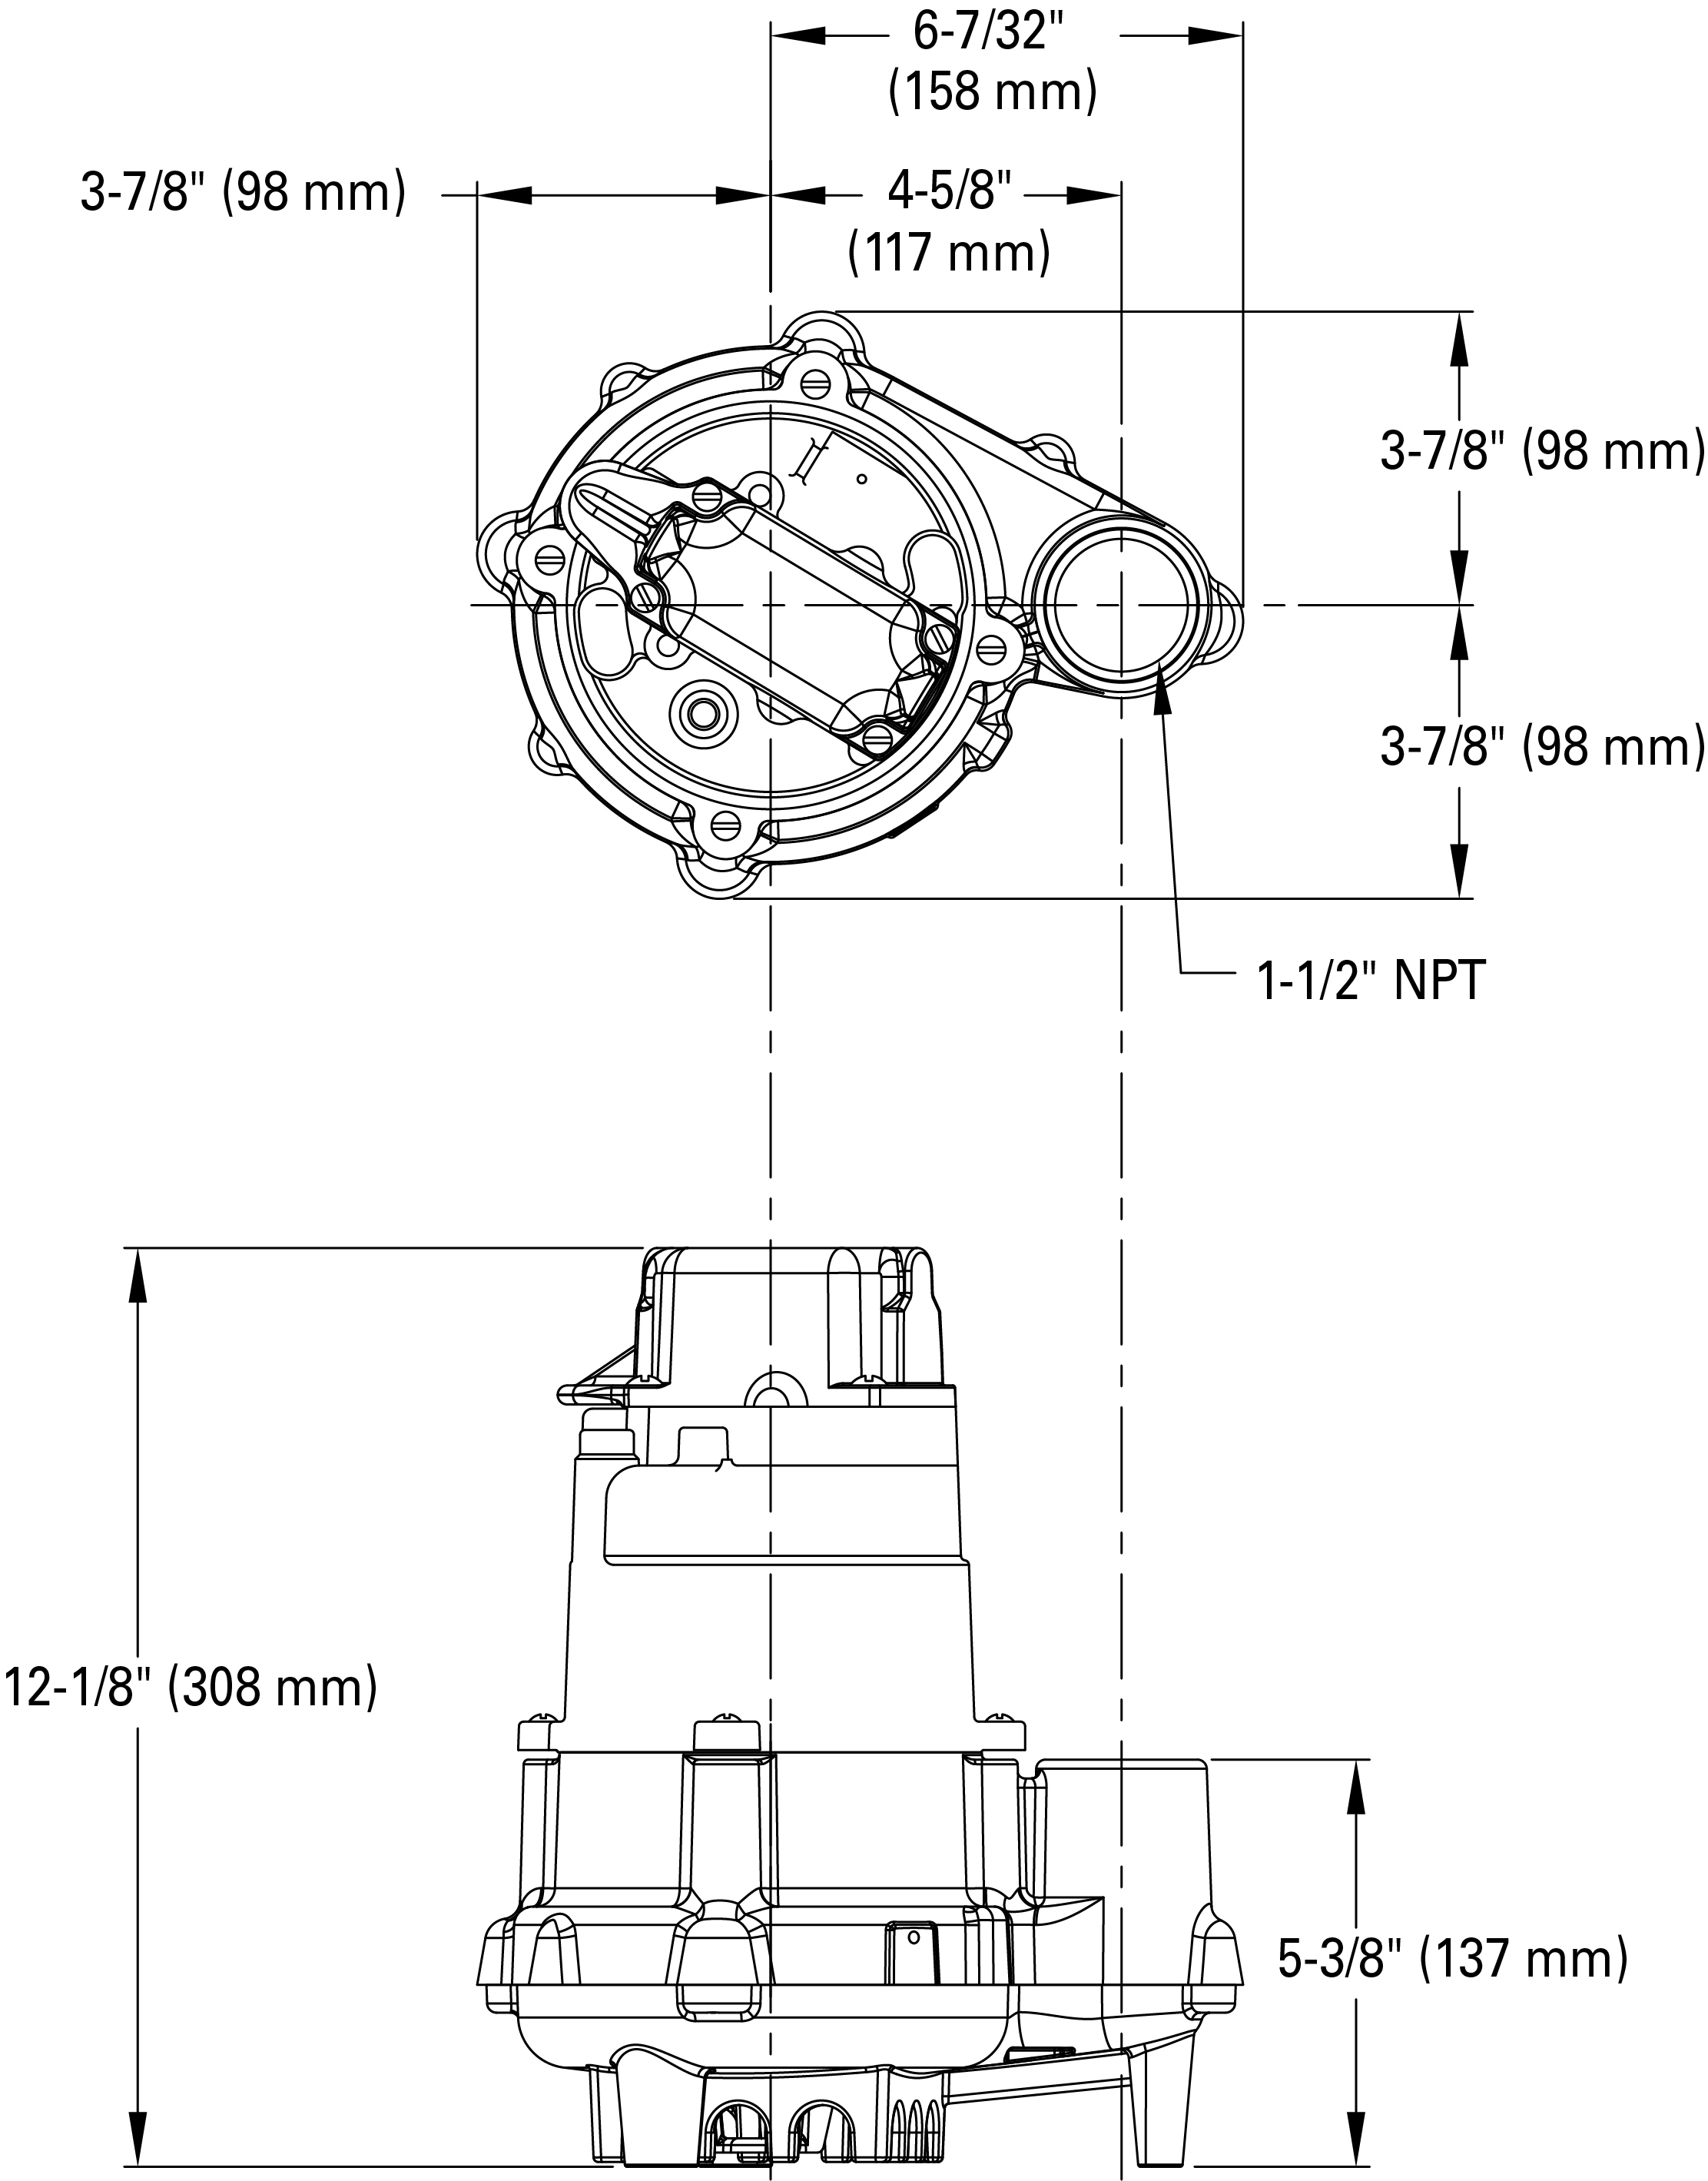 Oil Guard® Systems | Zoeller Pump Company - Well Pump Control Box Wiring Diagram